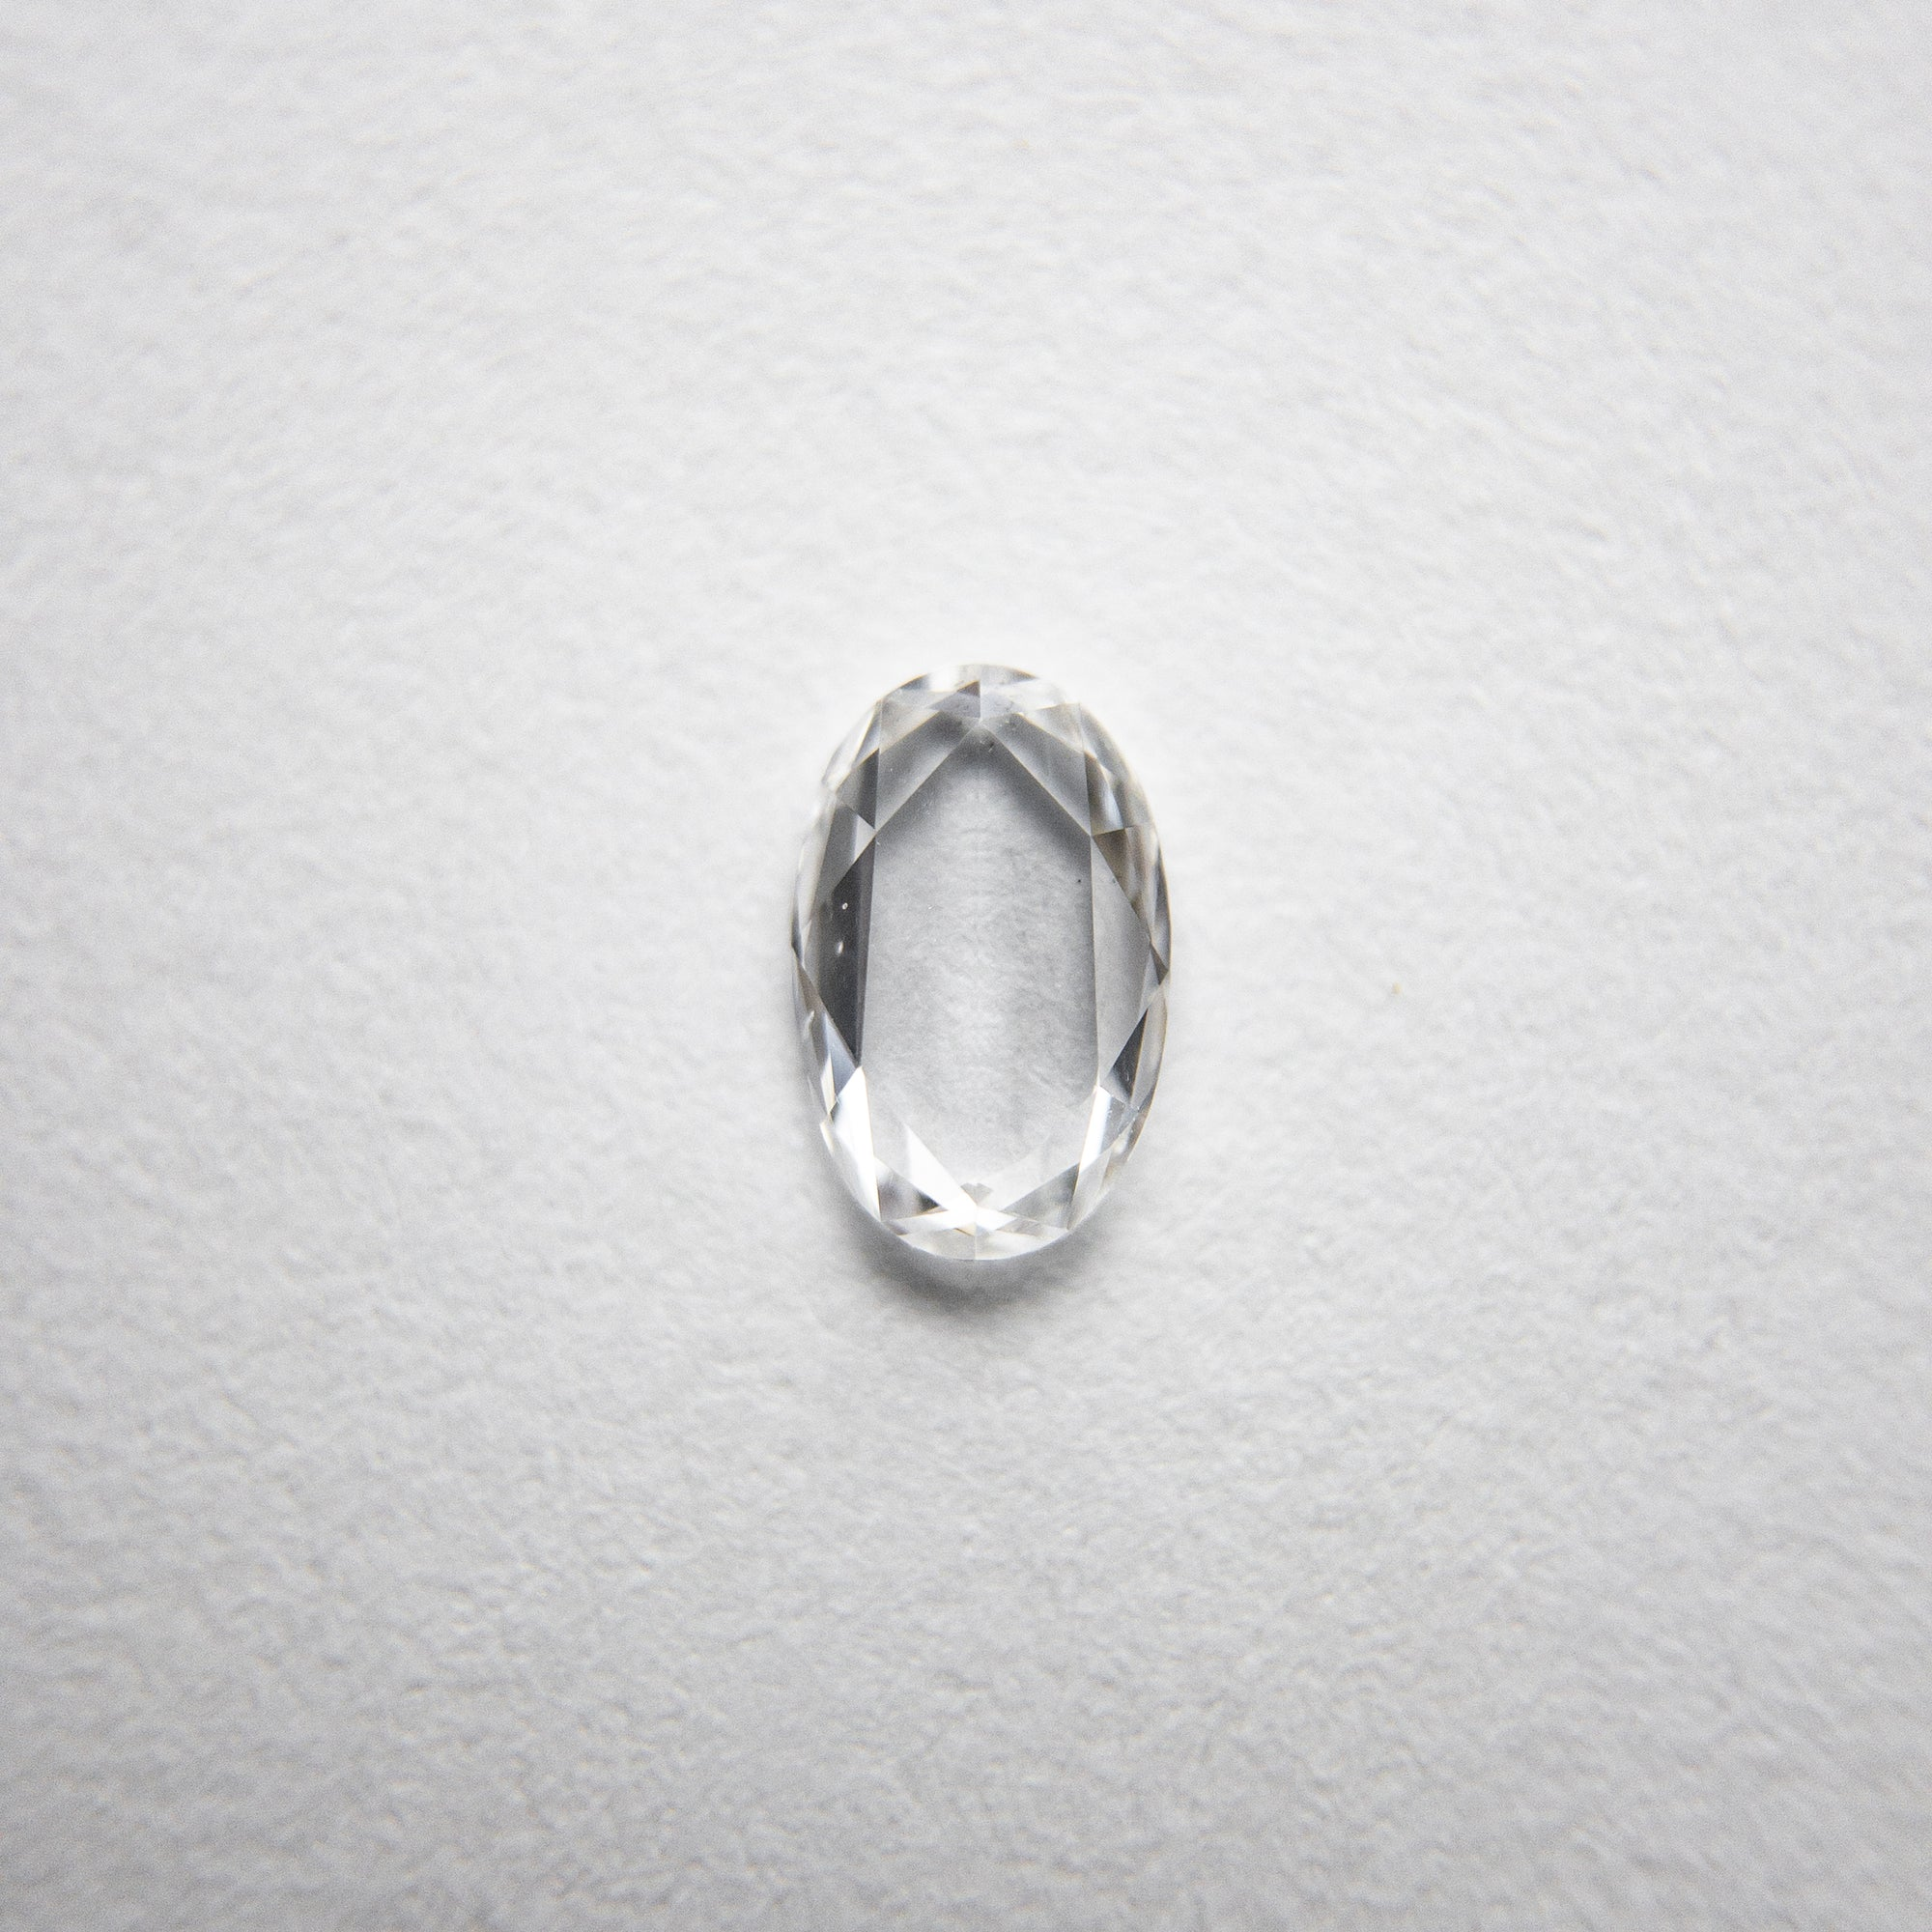 0.26ct 5.73x3.68x1.23mm Oval Rosecut 18238-08